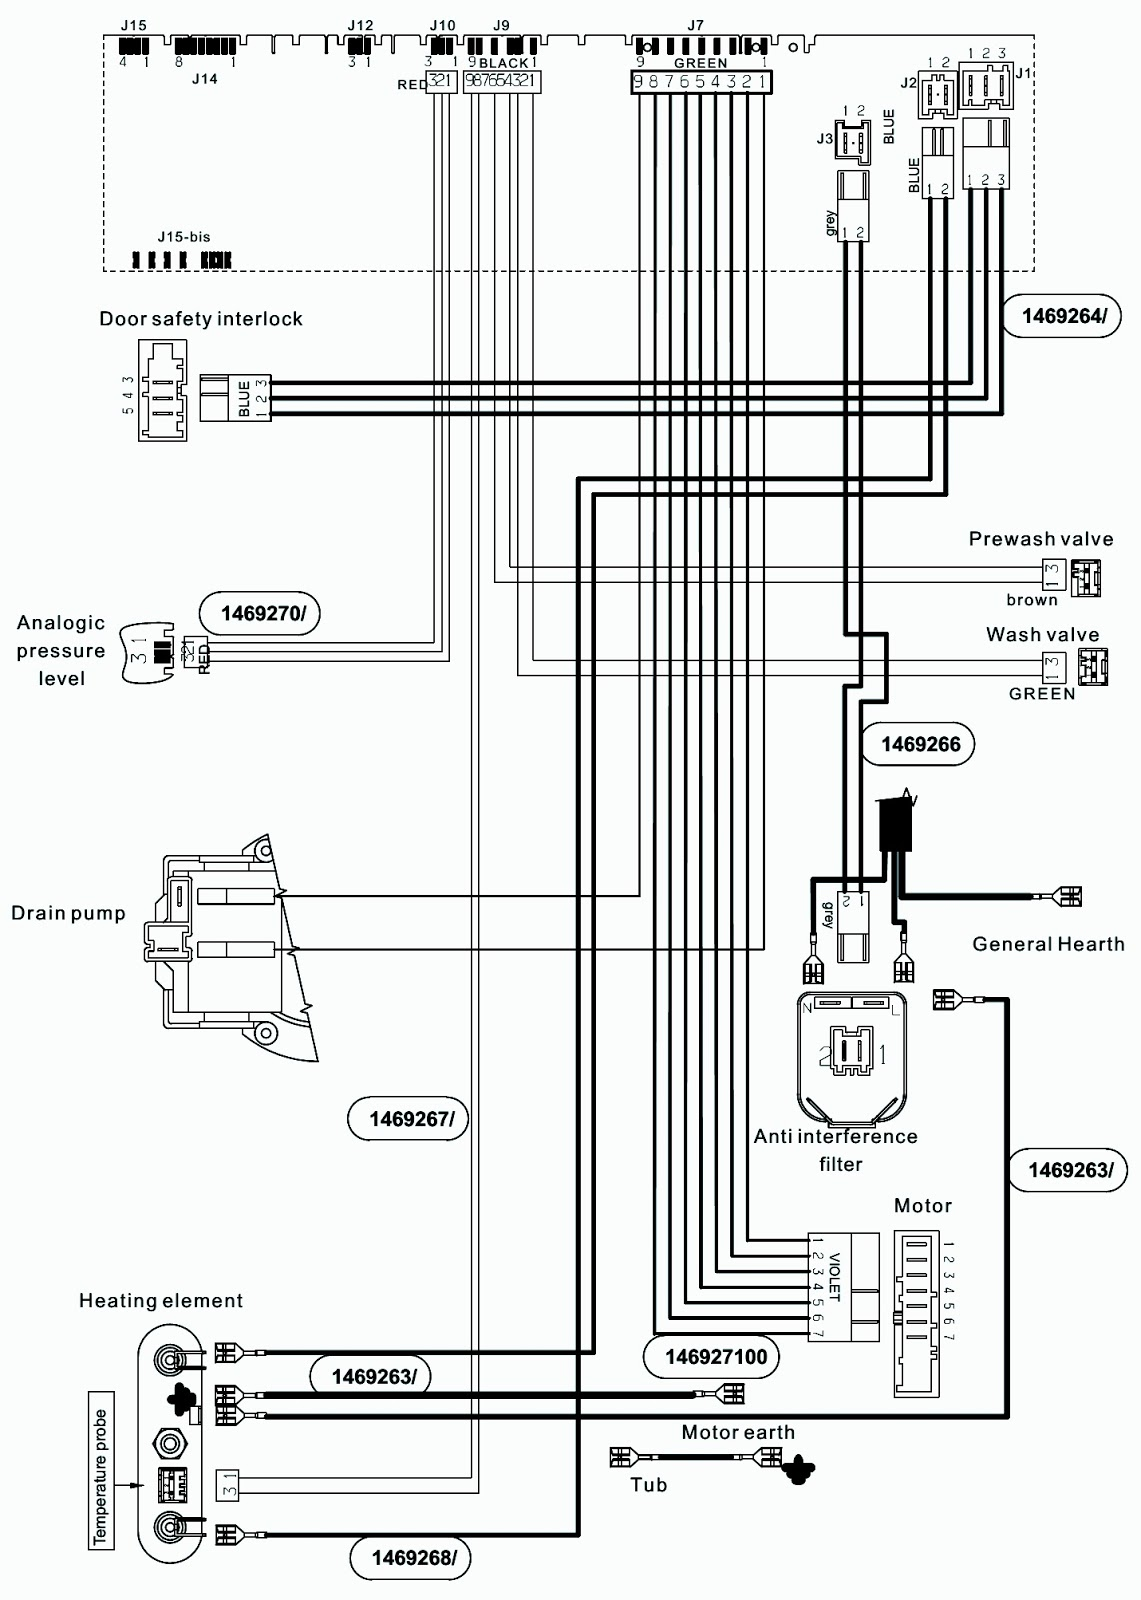 4 Leg Led Wiring Diagram